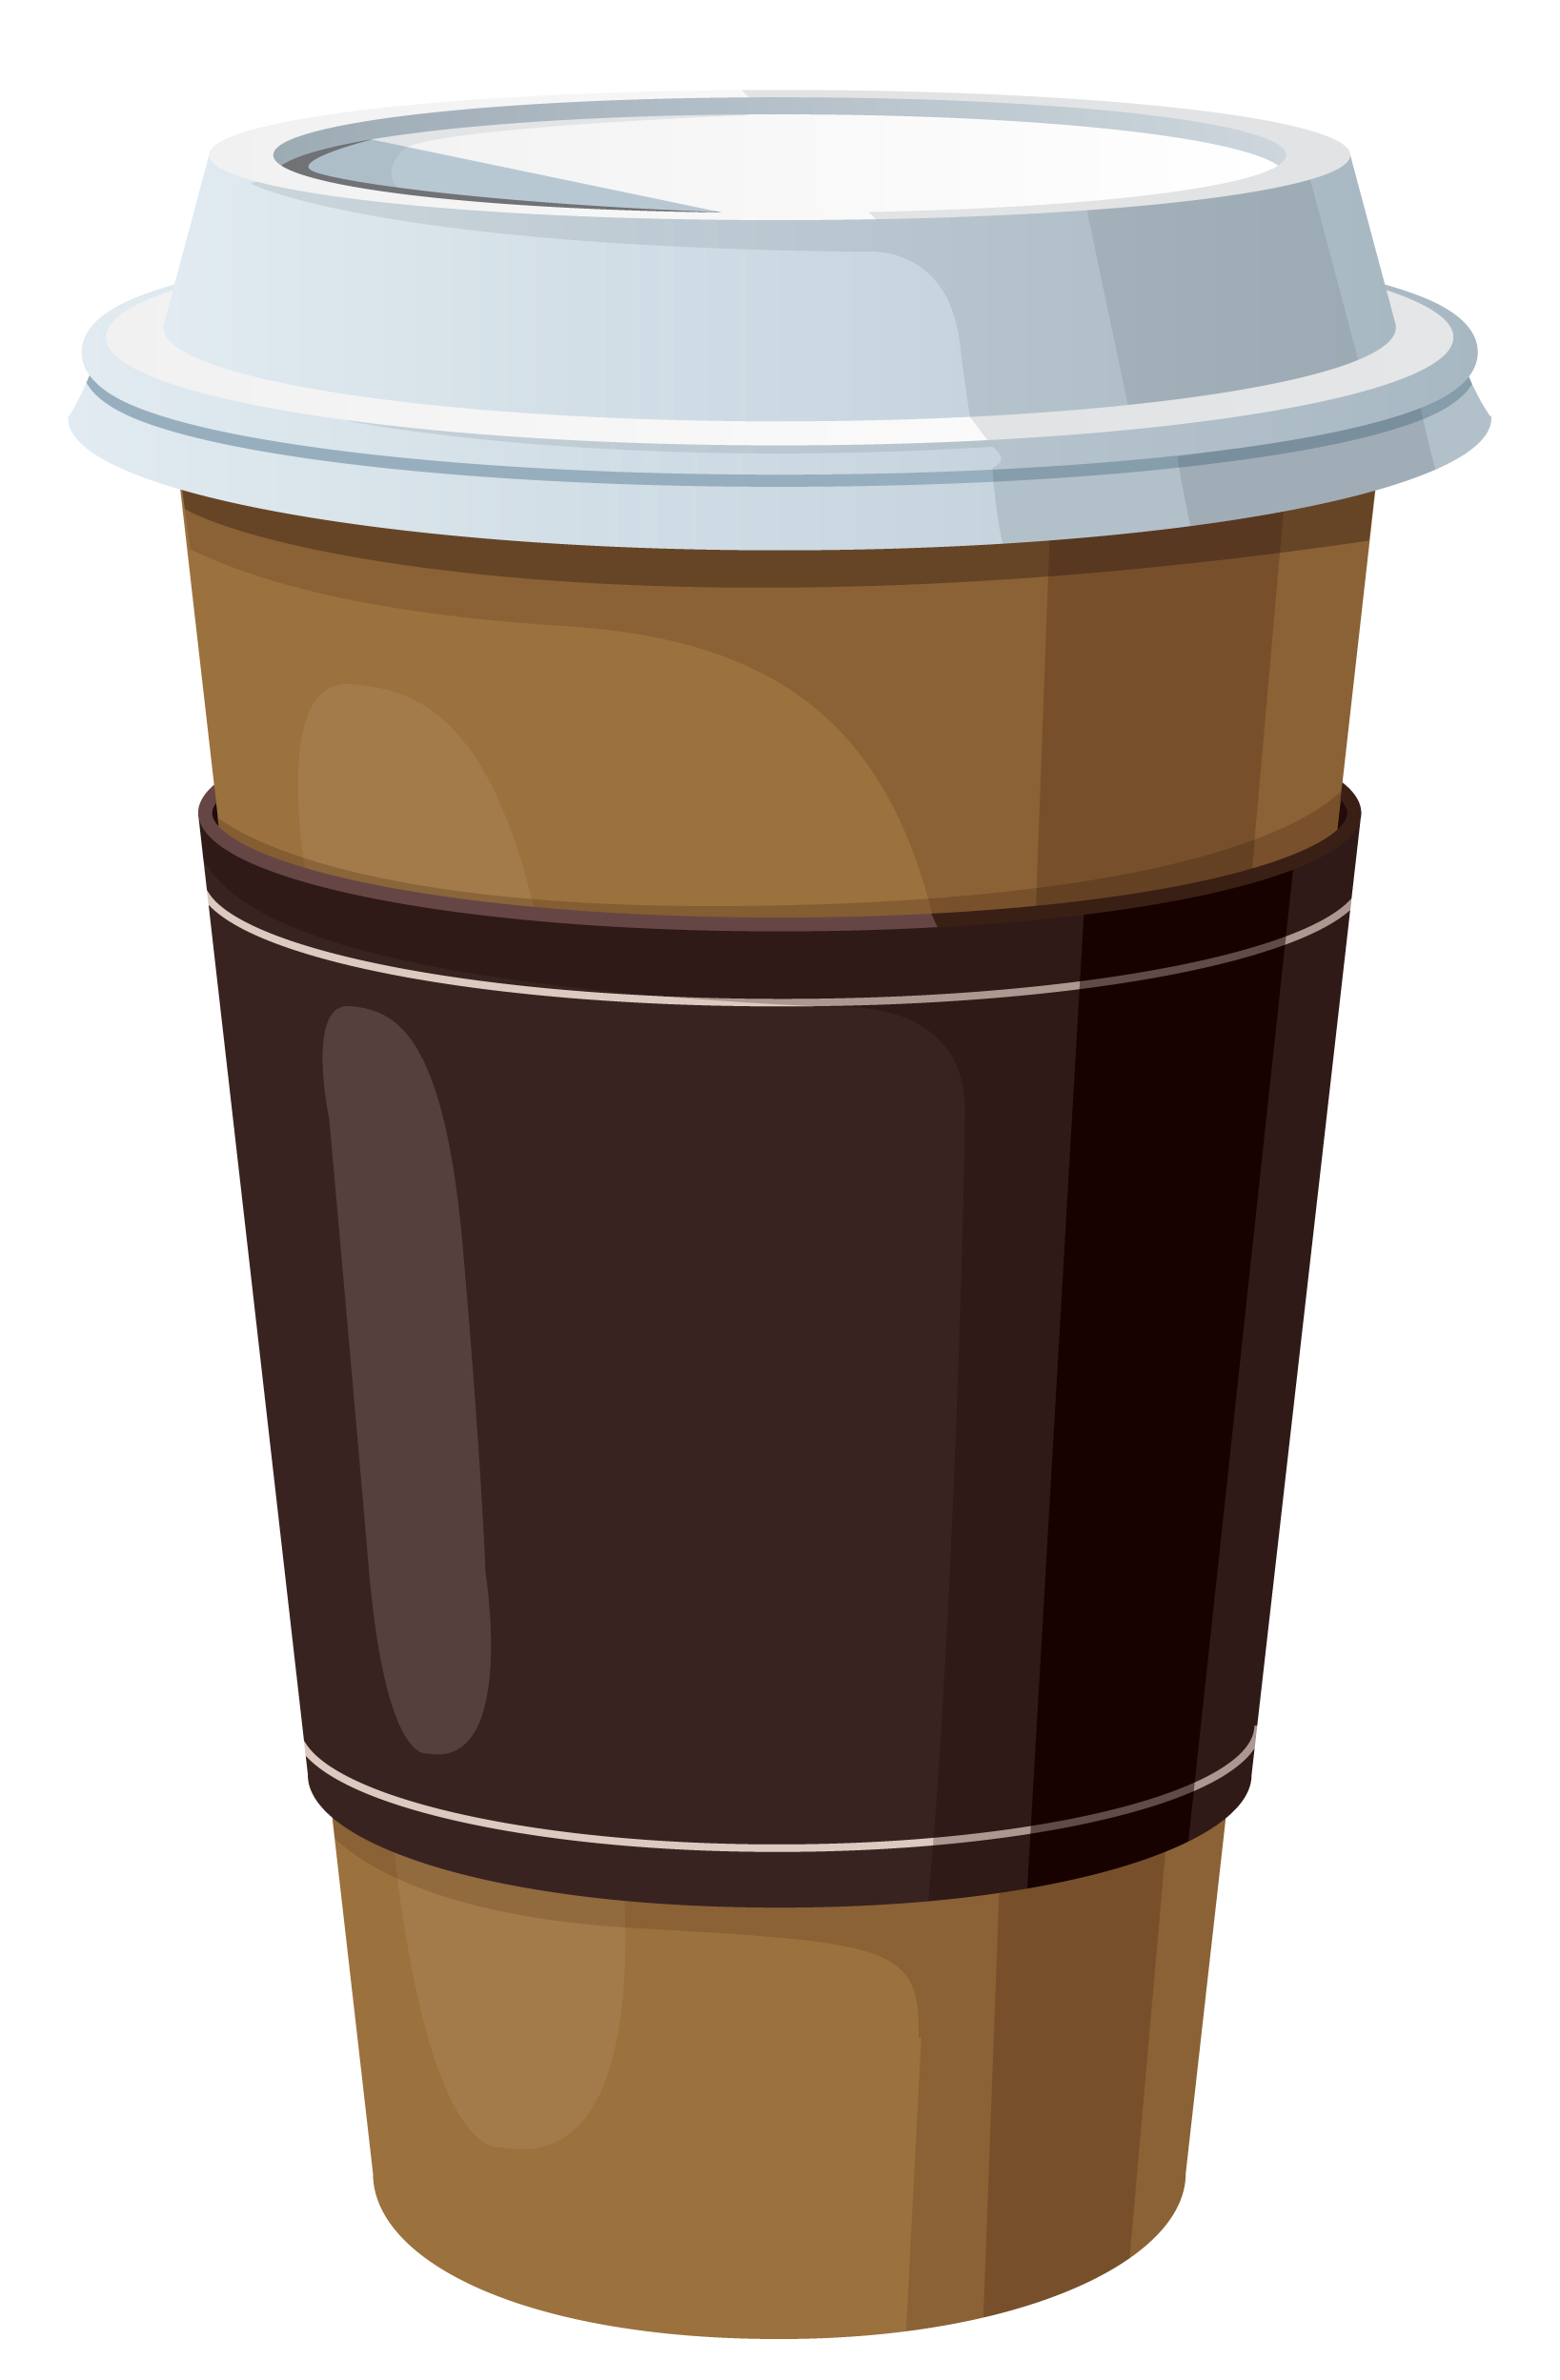 Coffee in plastic cup. Latte clipart tumbler starbucks